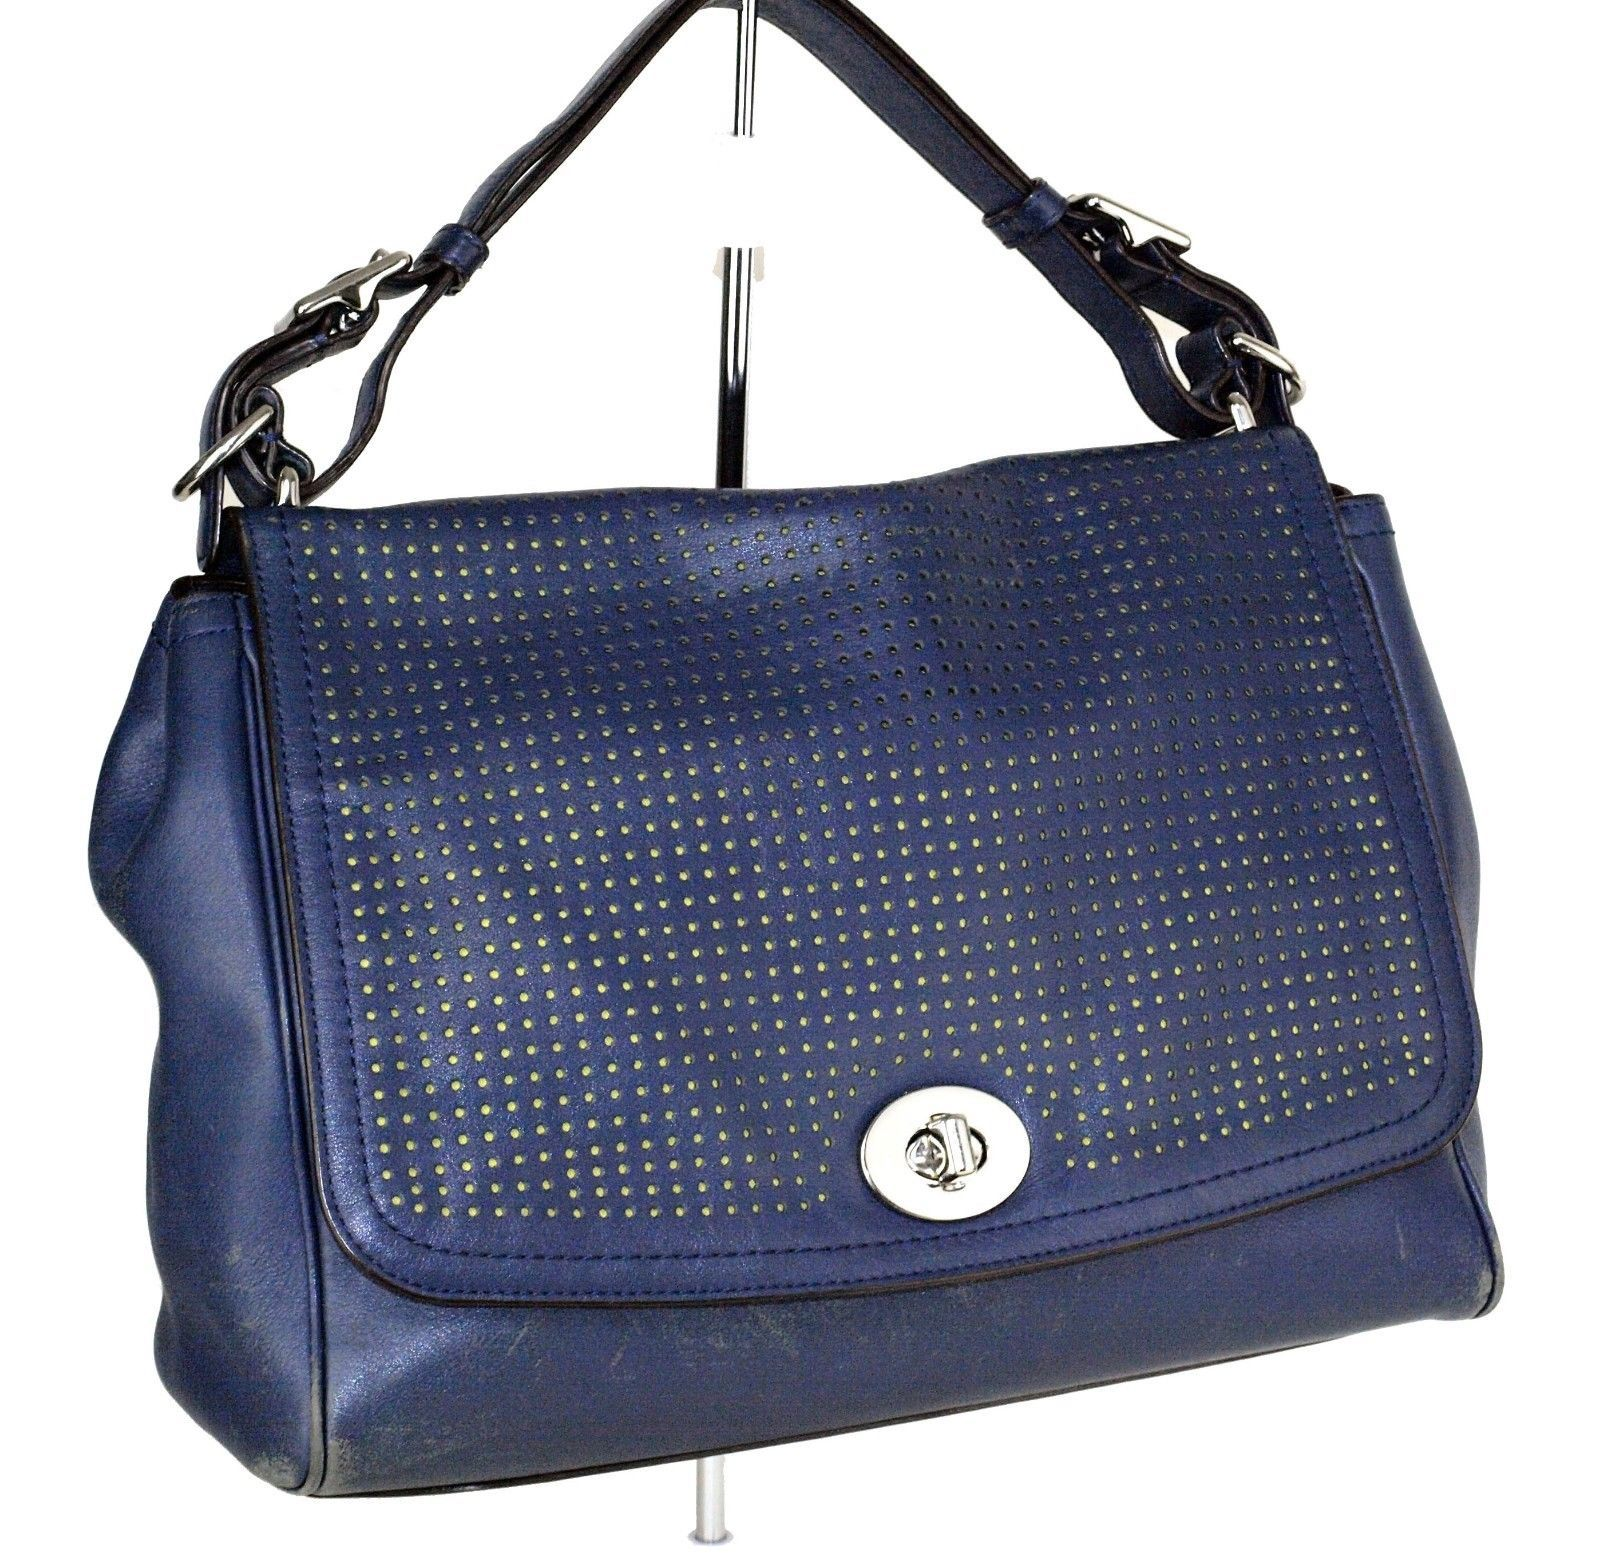 S l1600. S l1600. Previous. 100% Authentic COACH Legacy Perforated Leather  Romy Navy Hand Bag Used · 100% Authentic COACH ... 1b20fc6c66dcb